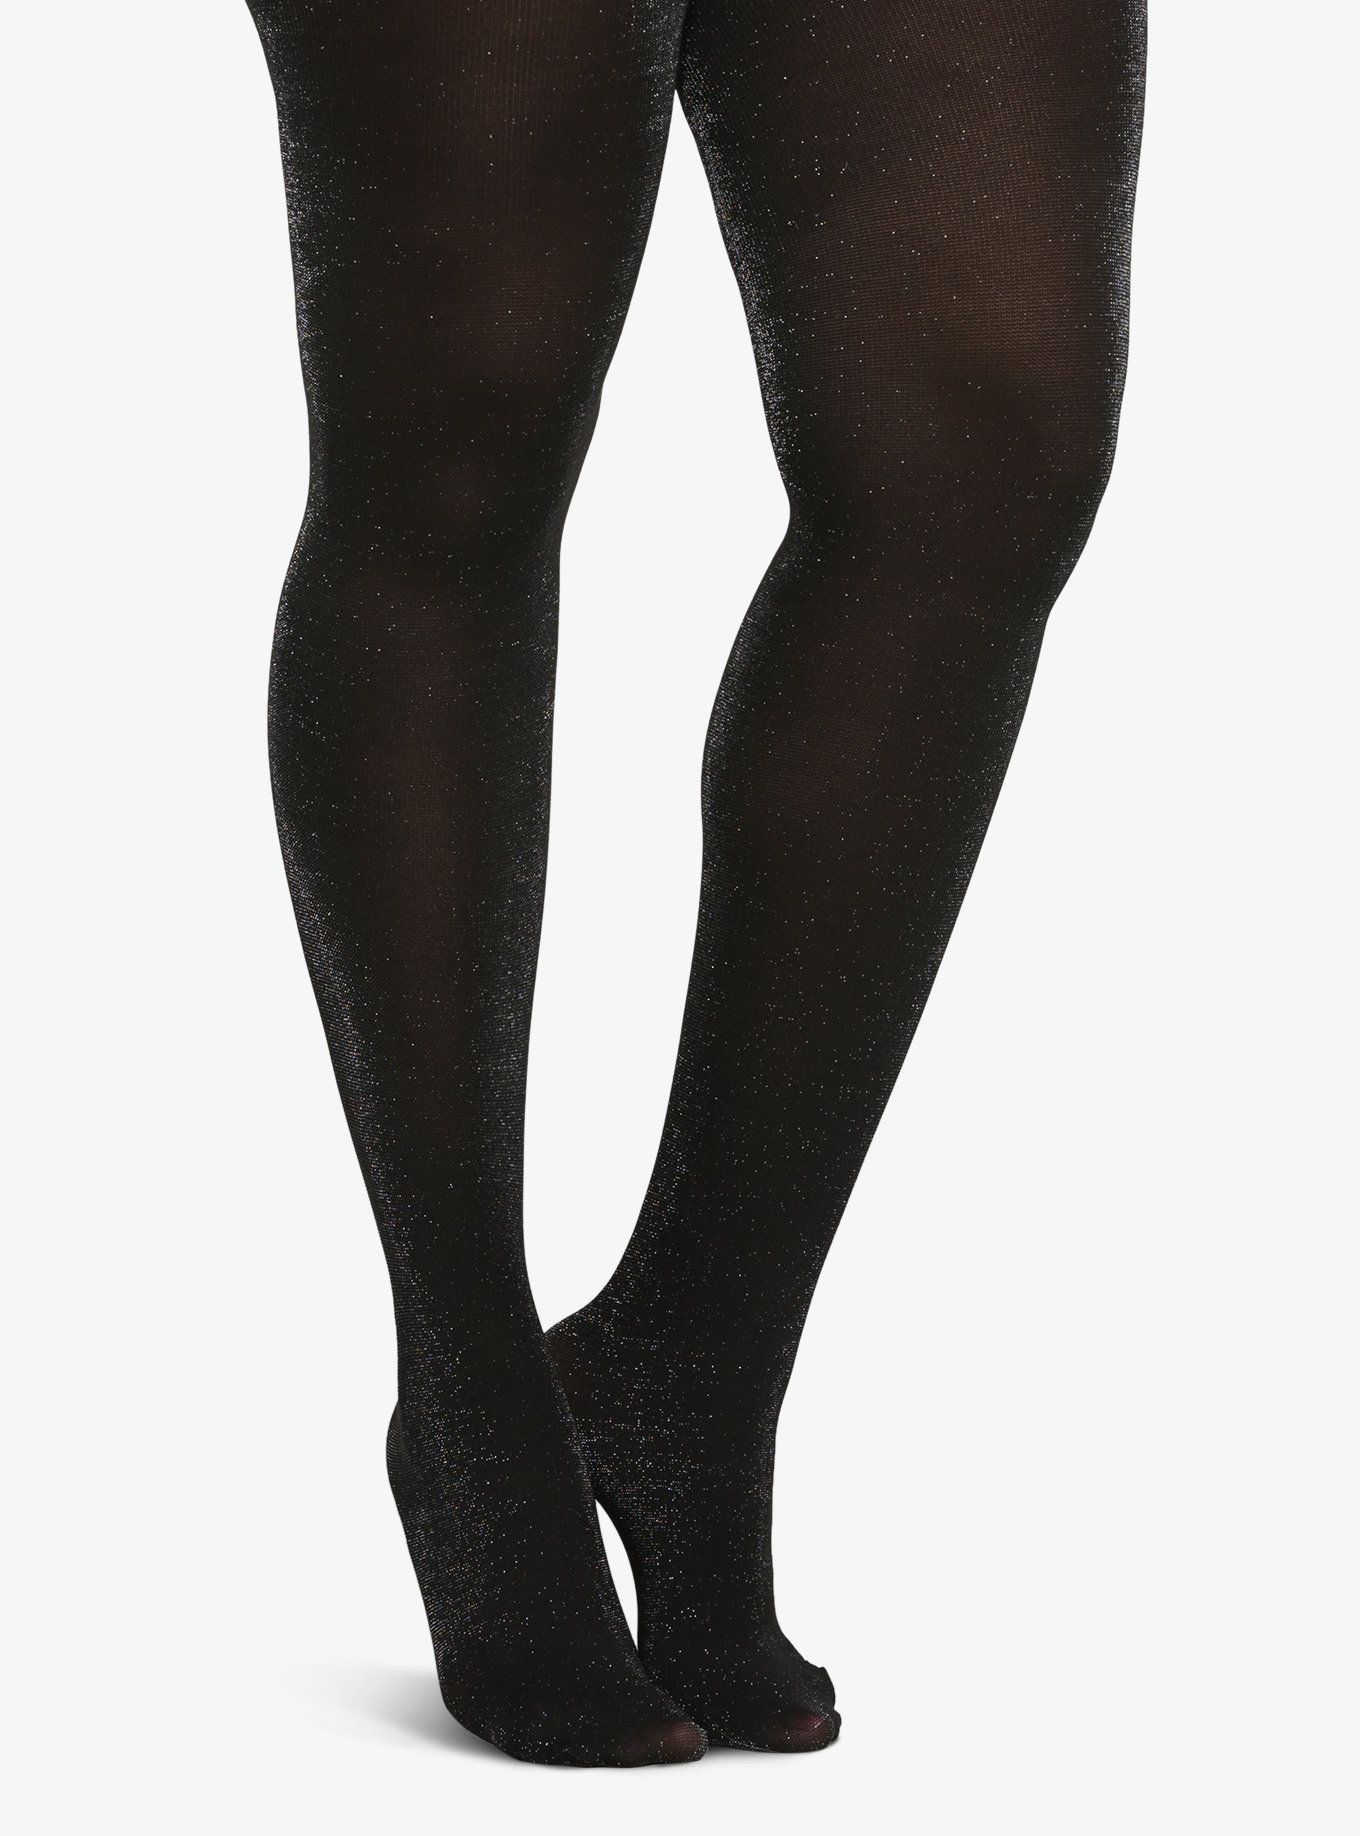 05d1ad8f325b7 Sparkly Opaque Tights | Cosplay | Opaque tights, Sparkly tights ...